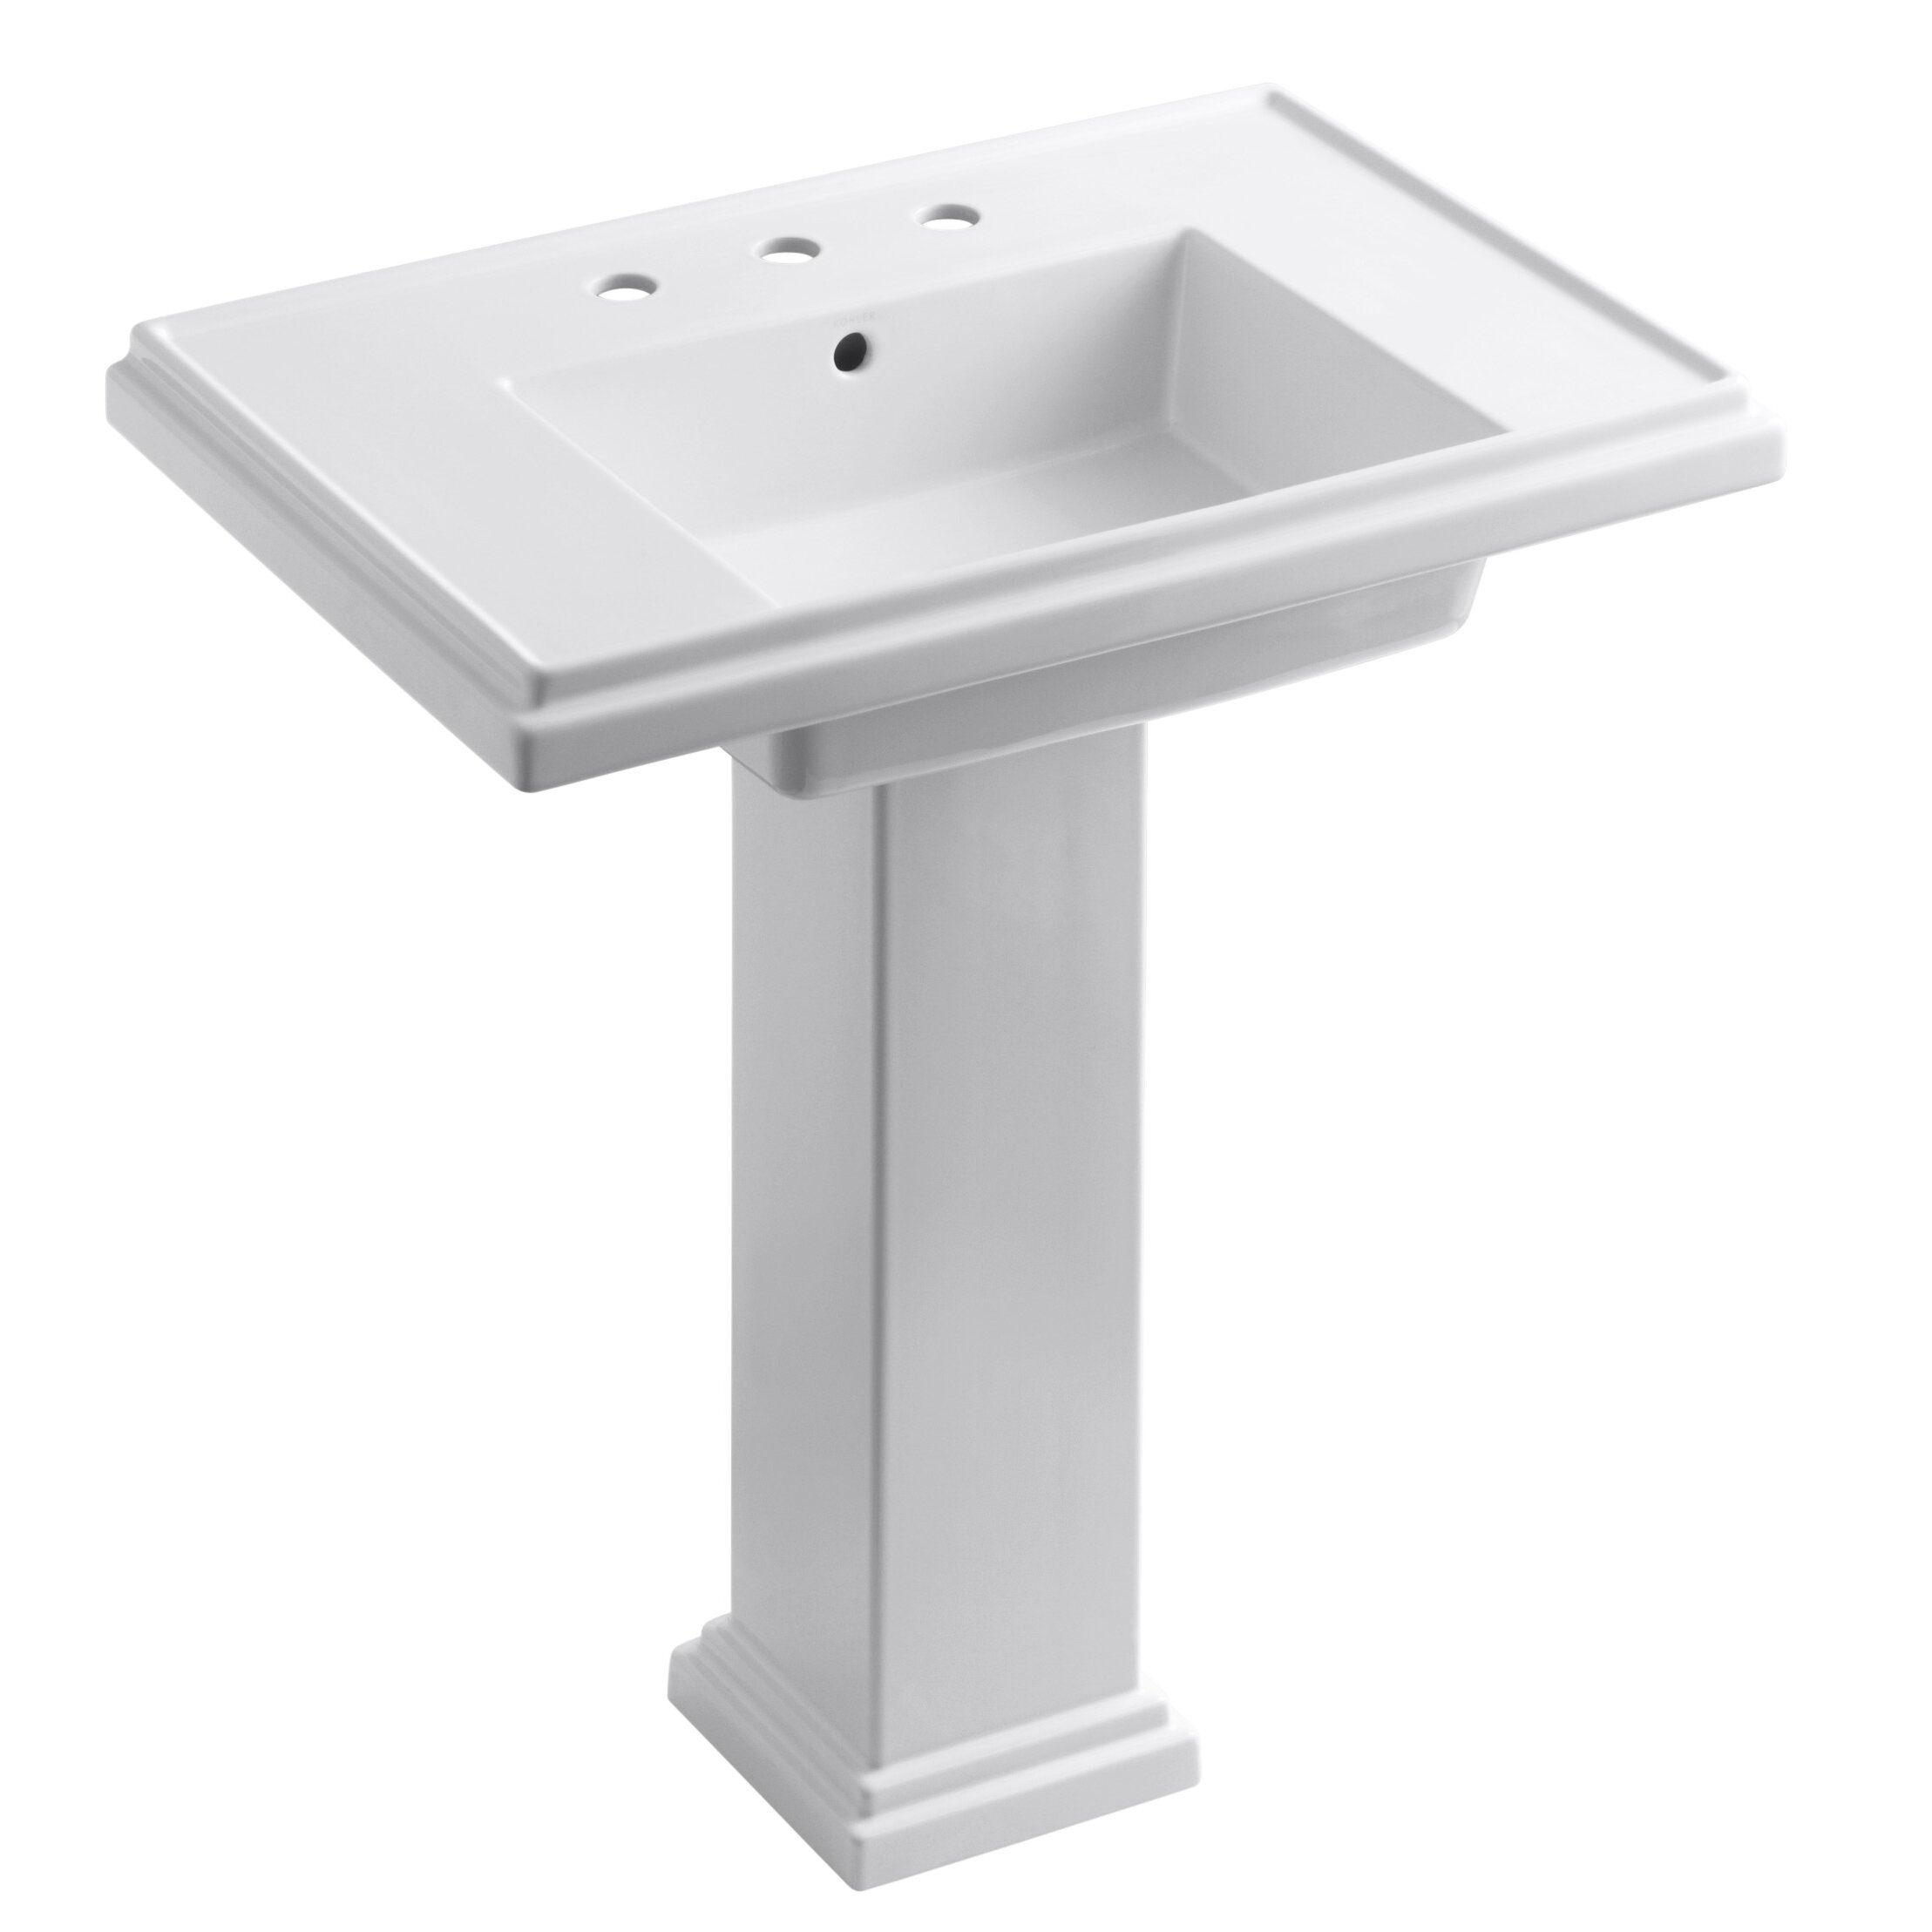 Kohler Tresham 30 quot  Pedestal Bathroom Sink. Kohler Tresham 30  Pedestal Bathroom Sink   Reviews   Wayfair